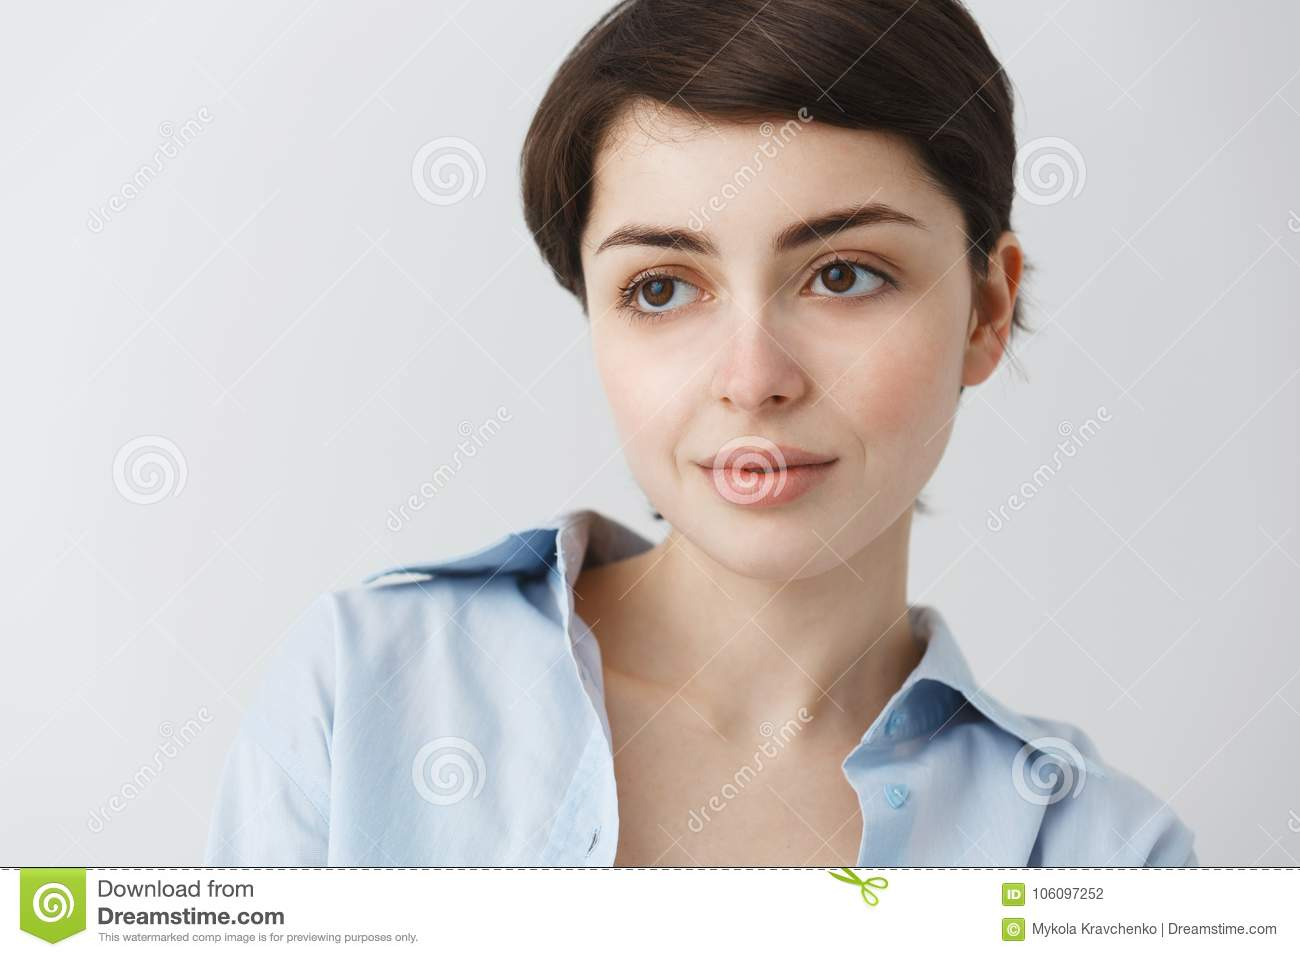 Close Up Portrait Of Beautiful Caucasian Girl With Short Dark Hair And Big Brown Eyes Looking Aside Smiling Gently With Stock Photo Image Of Lifestyle Laugh 106097252